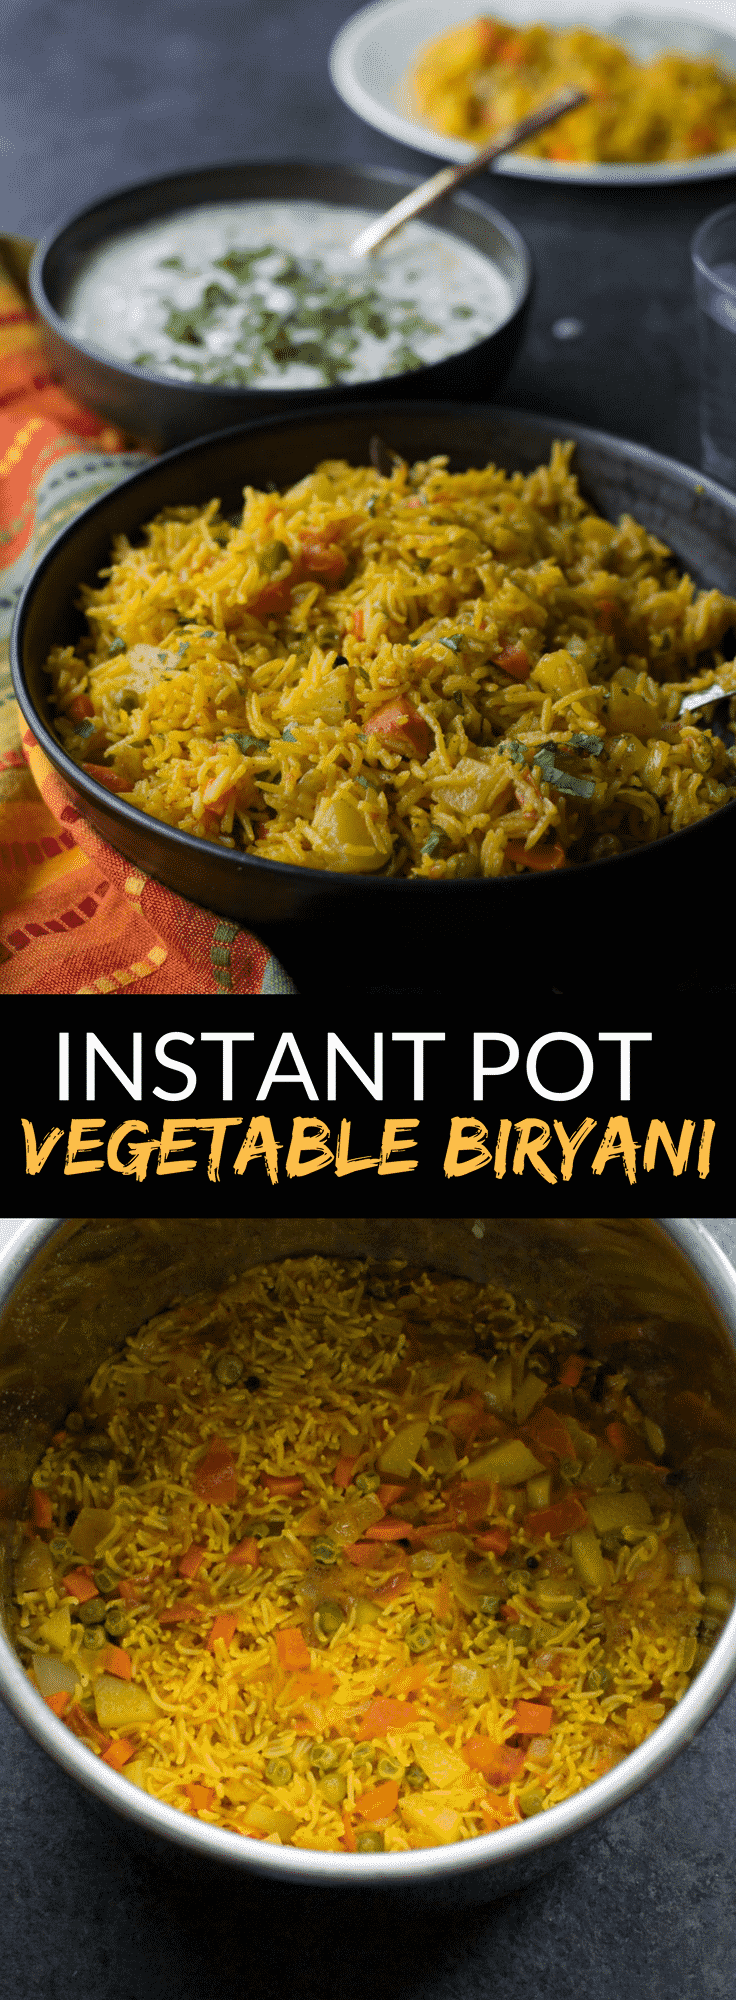 Instant Pot Vegetable biryani is a healthy, one-pot Indian vegetarian rice dish that comes together in 30 minutes. Make this recipe in your Instant Pot today!  #InstantPotRecipe #Indianfood #Indiancuisine #ricedishes